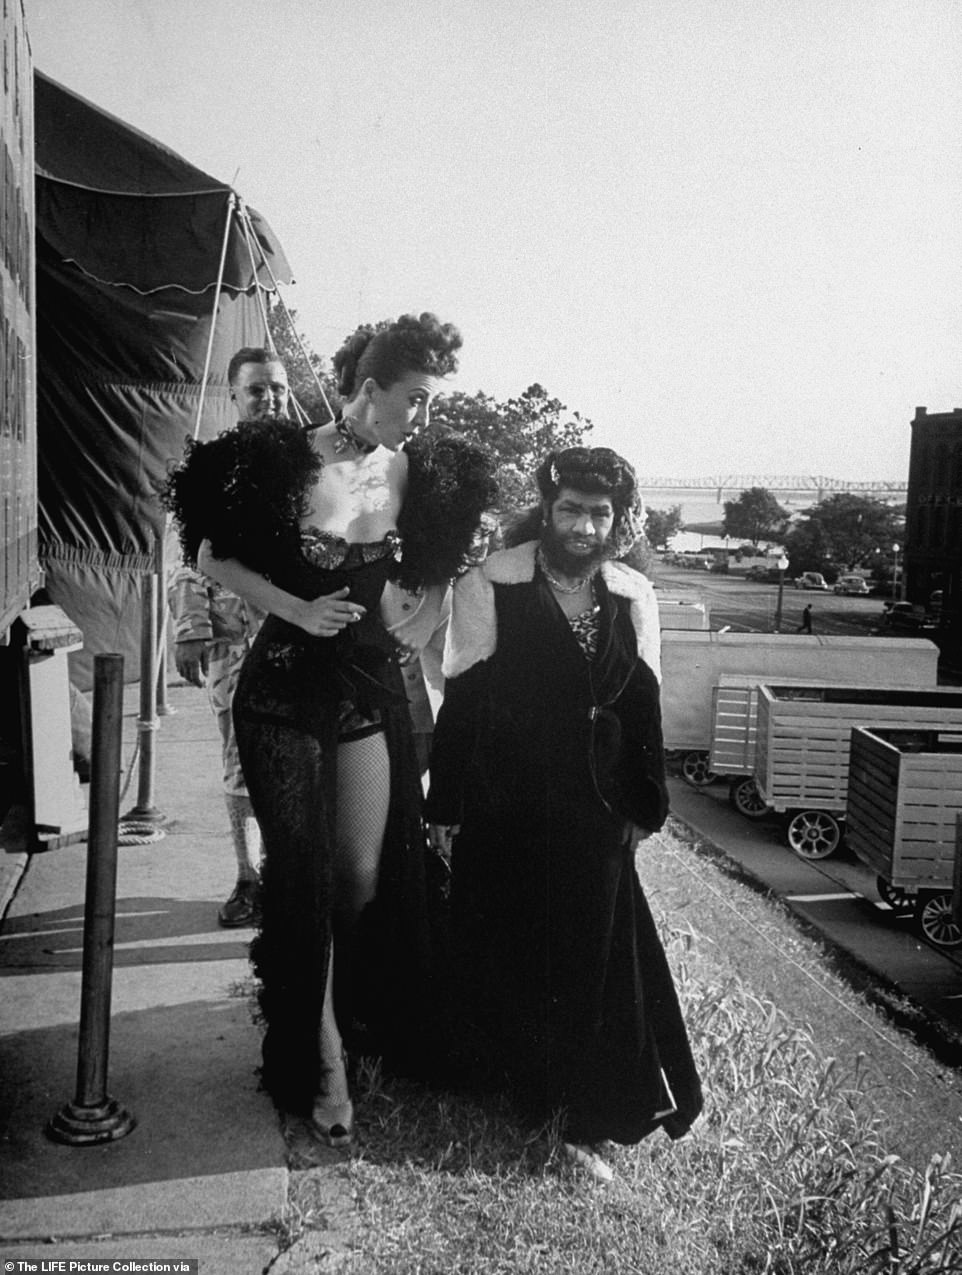 Gypsy Rose Lee walks the midway with friend and carnival freakshow star, the Bearded Lady Percilla Bejano, during her traveling carnival engagement across America